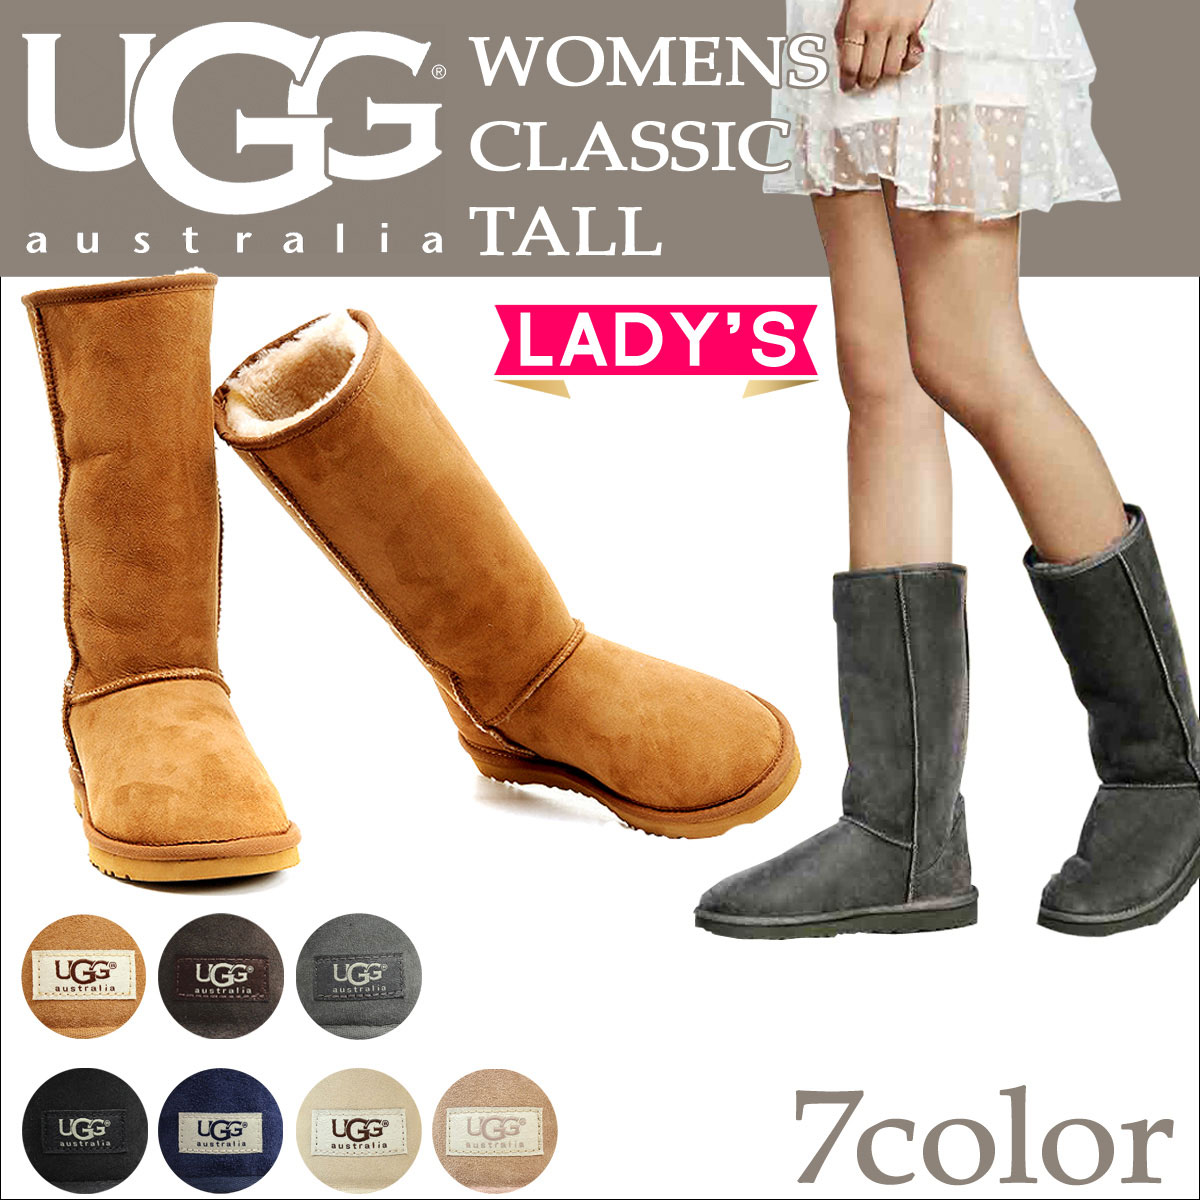 e01d03d6cf1 UGG WOMENS CLASSIC TALL II アグムートンブーツクラシックトール 2 Lady's 5815 1016224